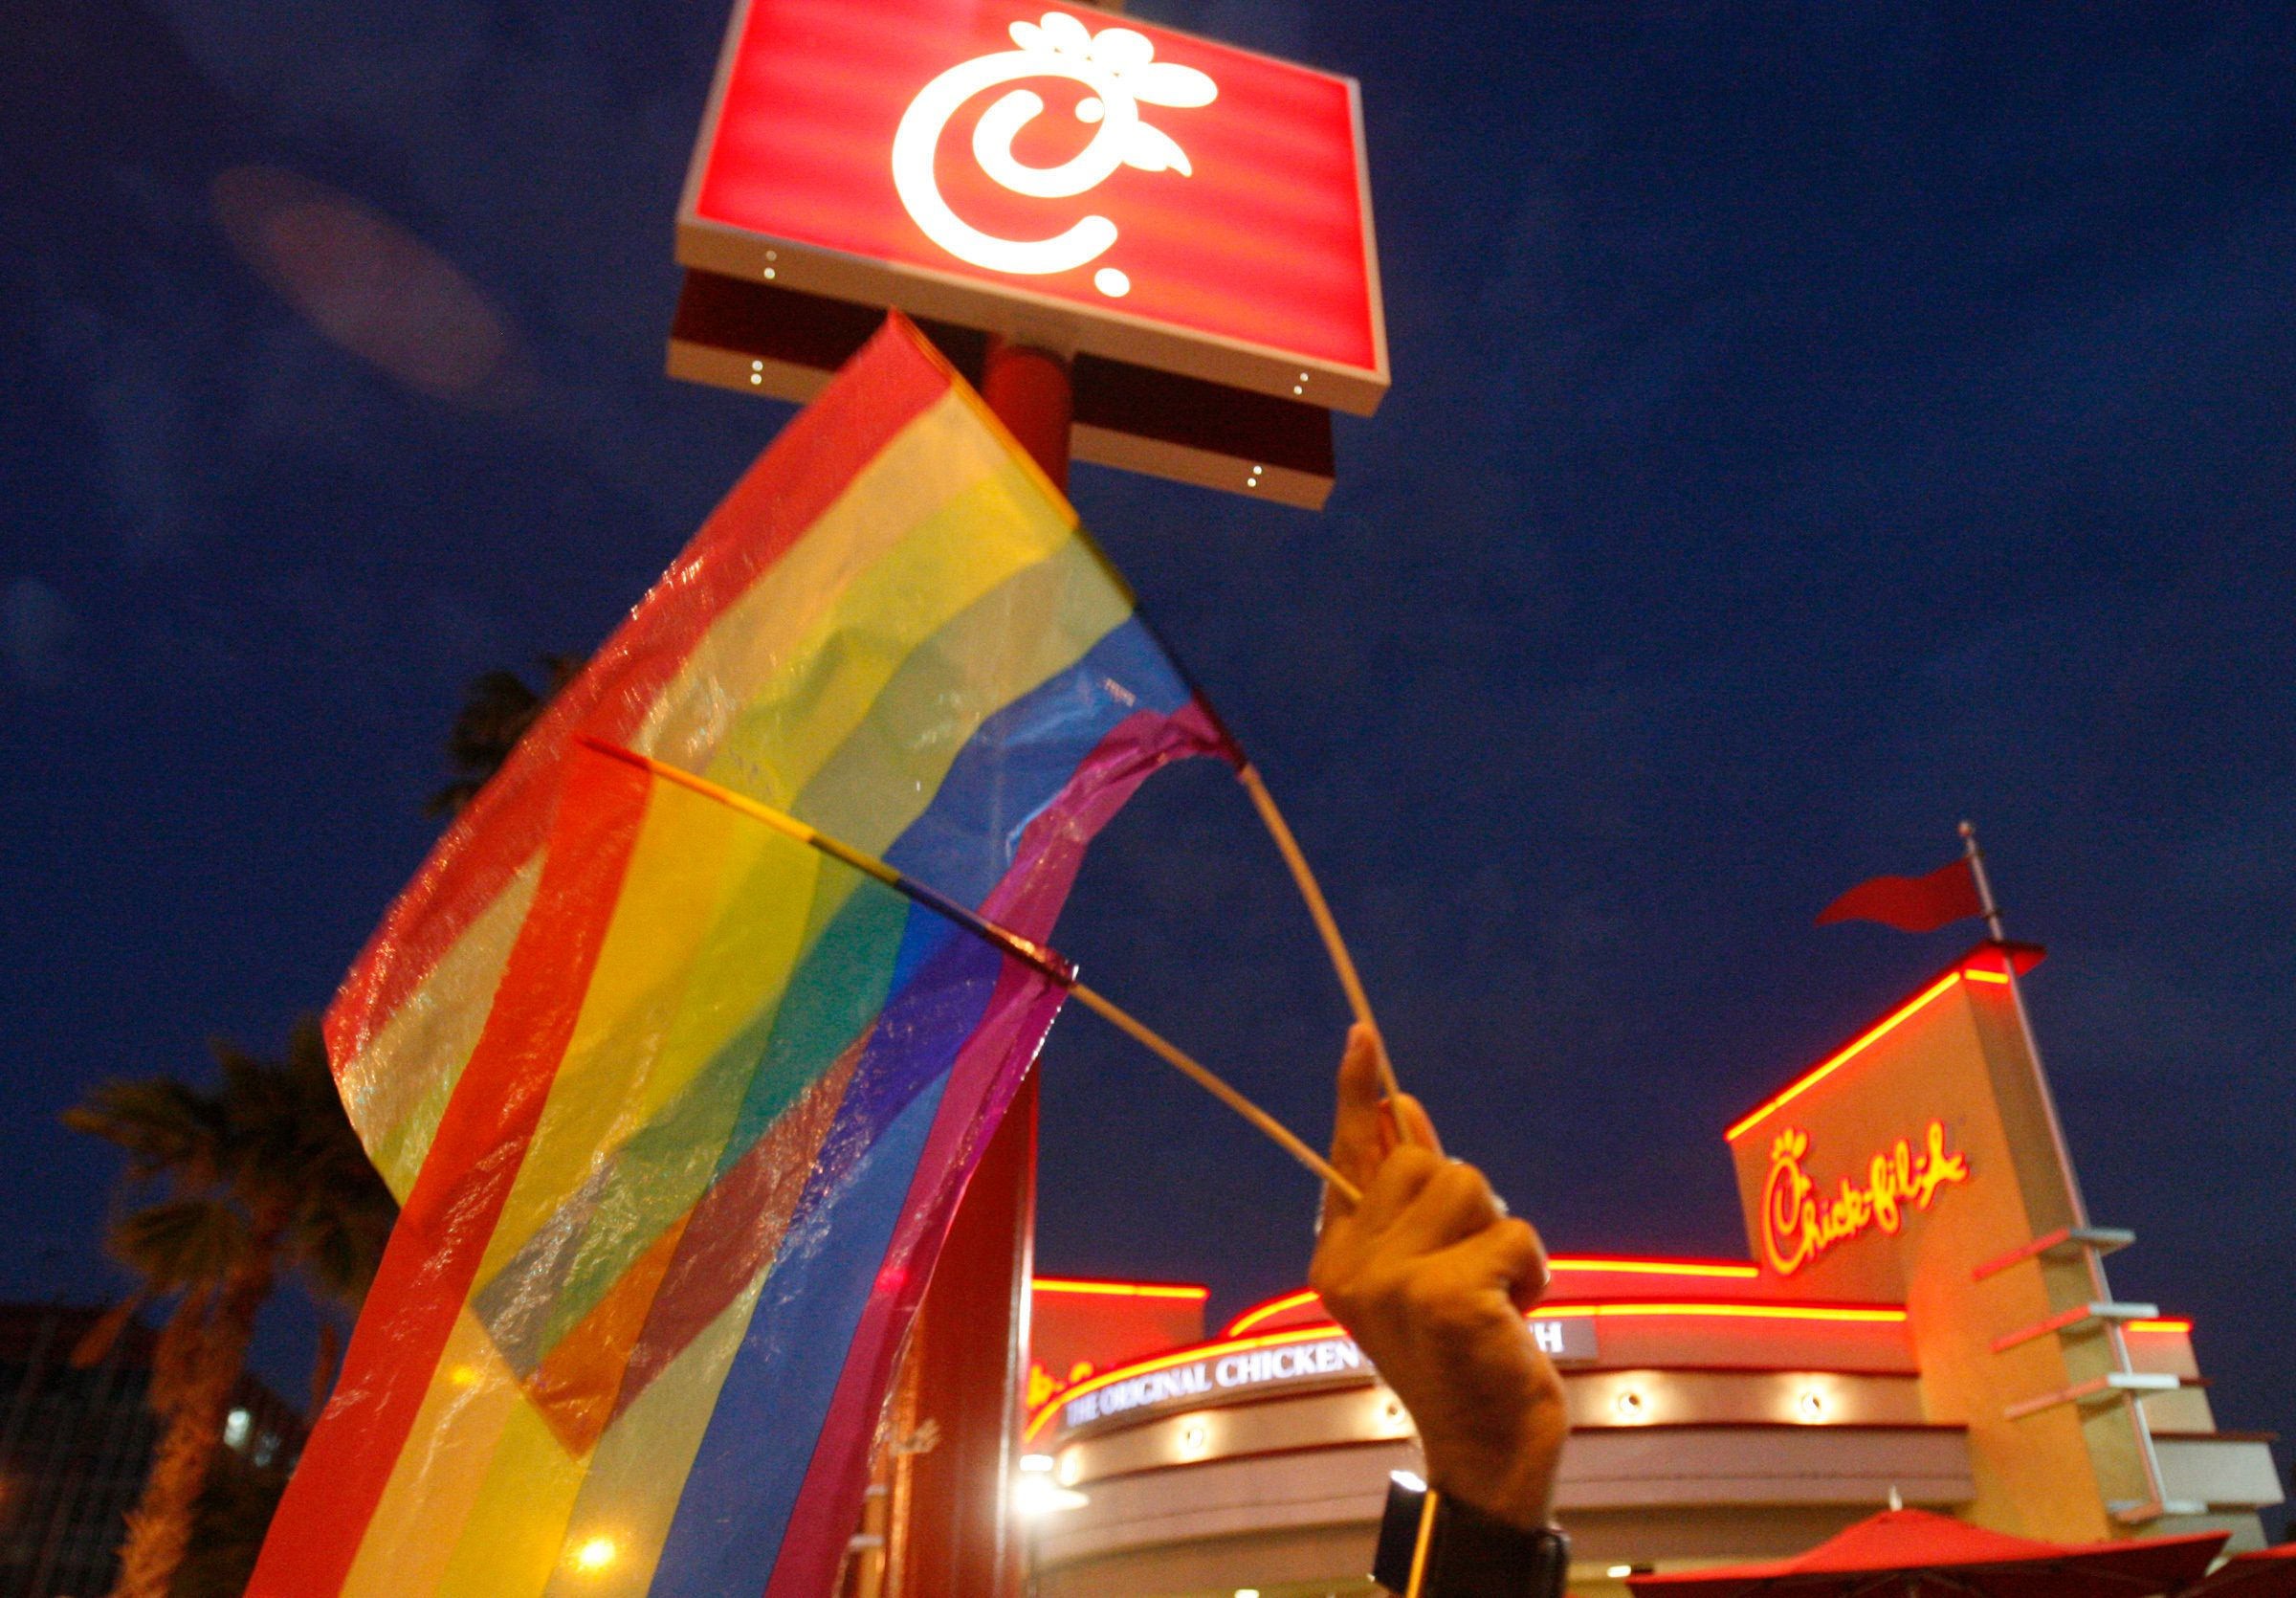 This California City Is Planning To Open 'Gayest Chick-fil-A' In America